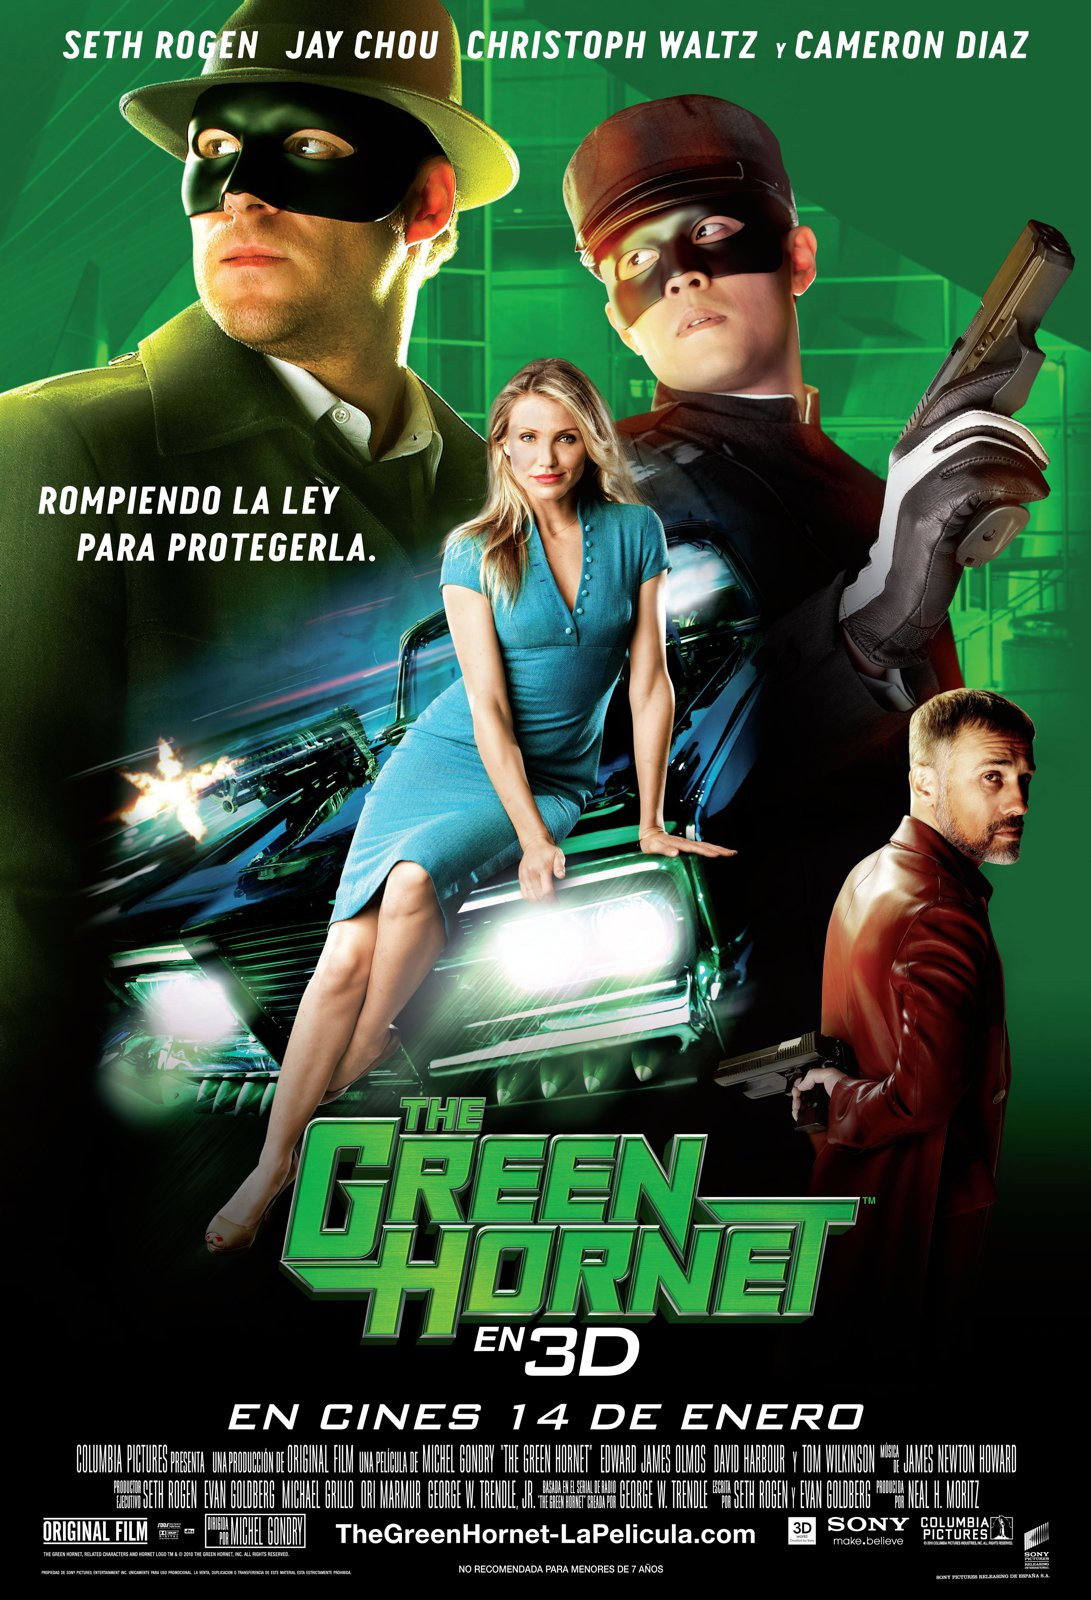 The Green Hornet (2011) | Amazing Movie Posters